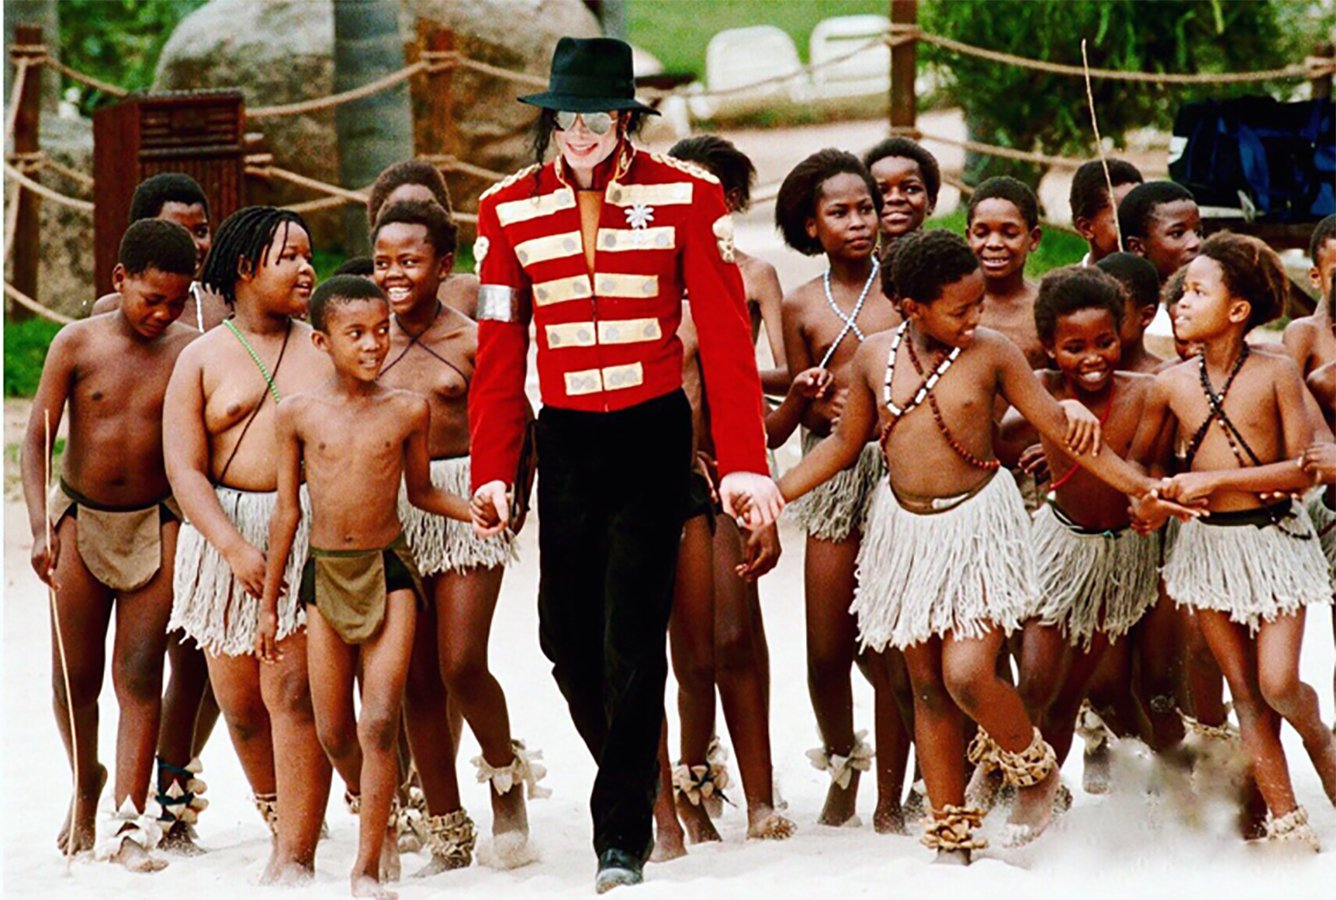 MJ in South Africa